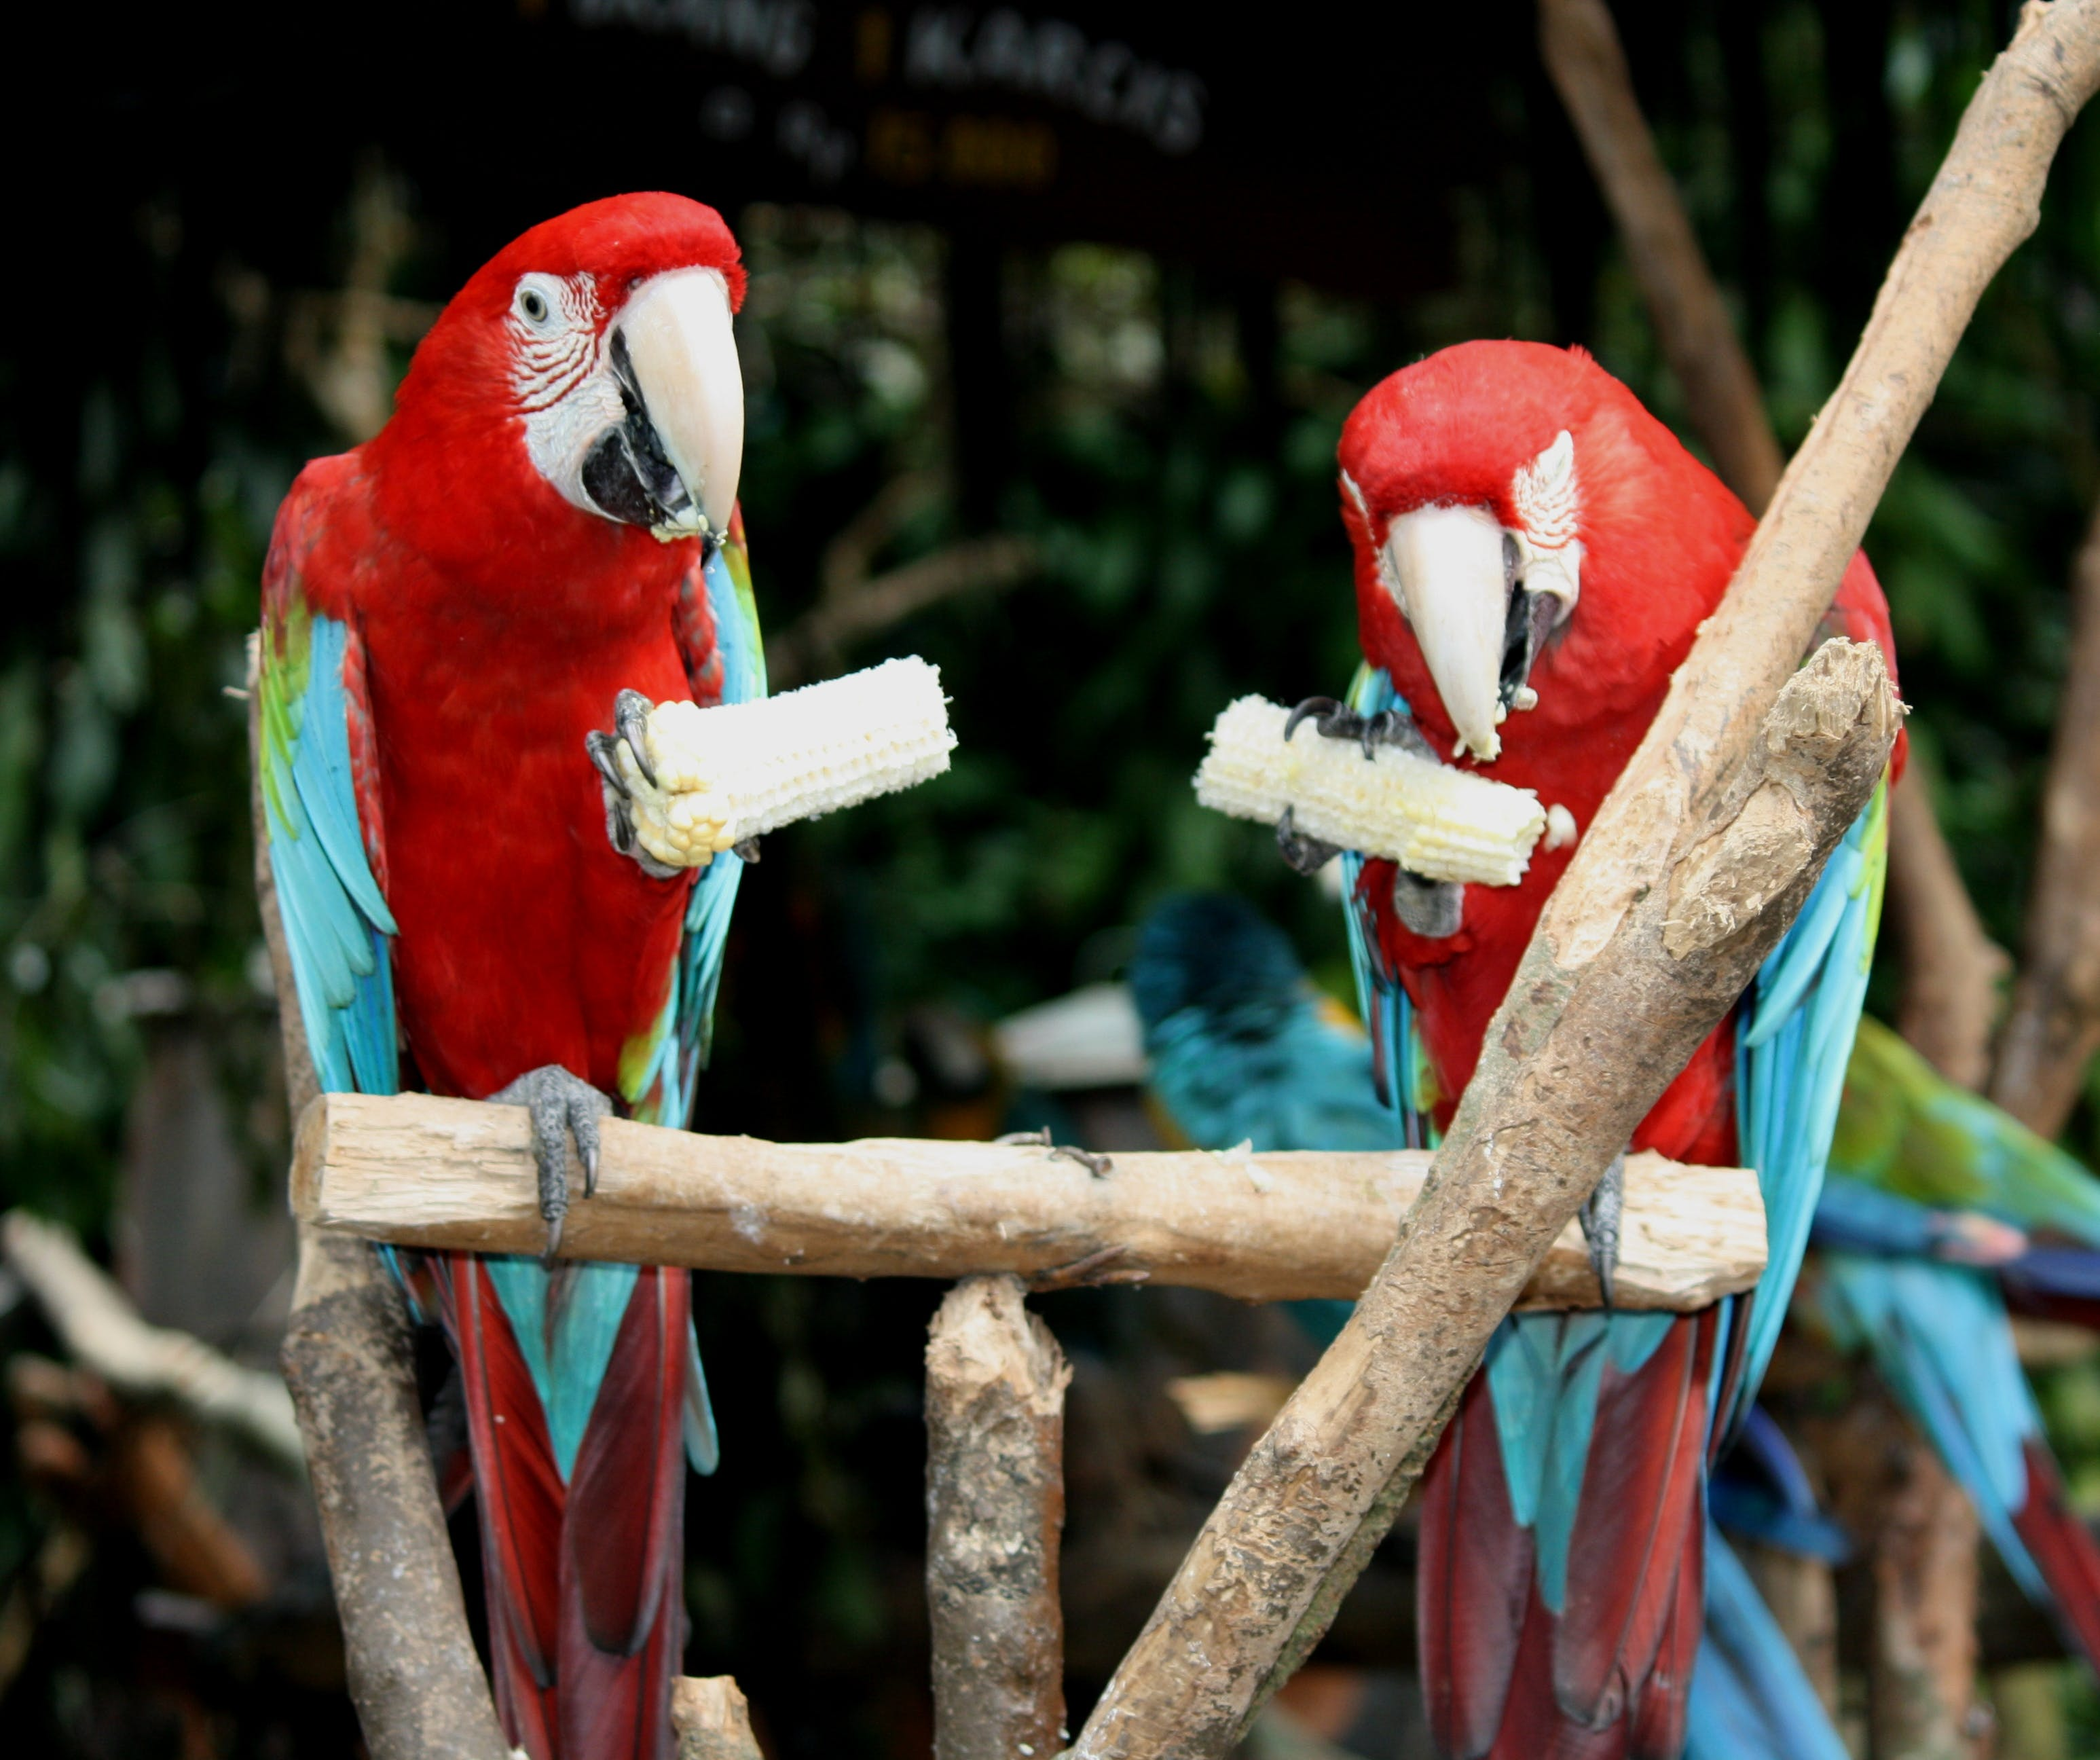 Two Red-and-blue Parrot Standing on Brown Wooden Stick